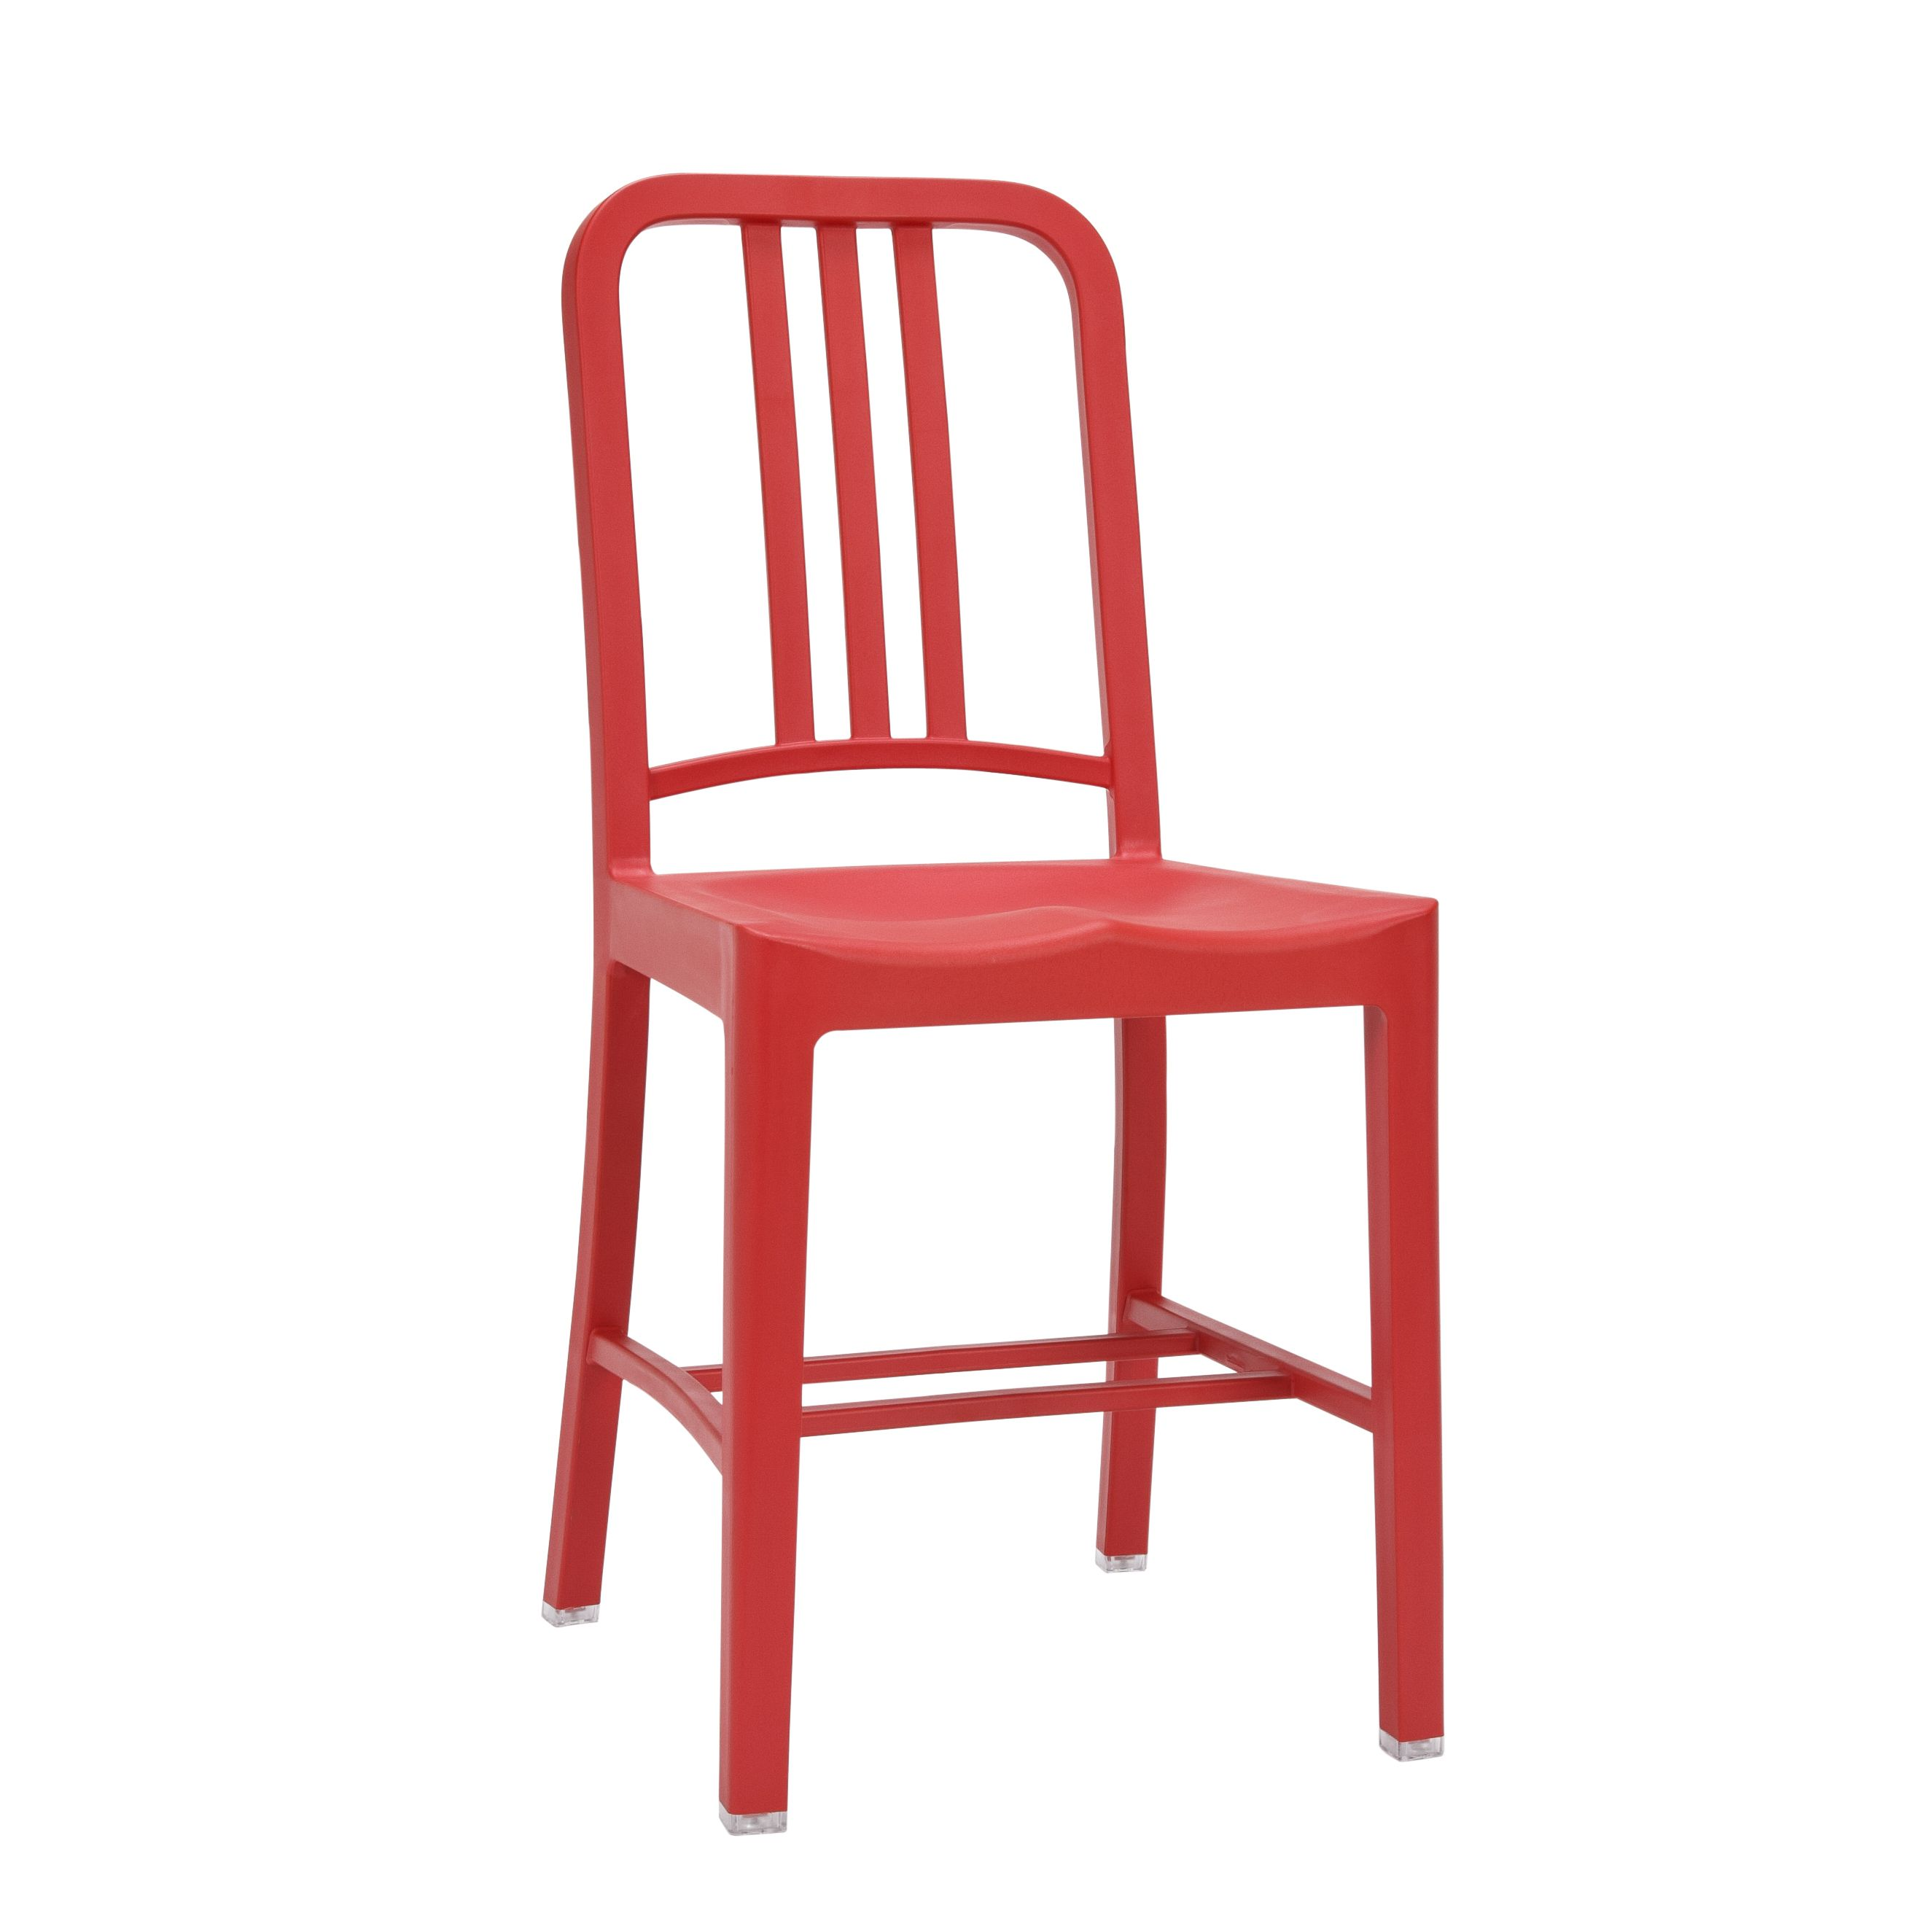 111 Navy® Chair   Red By Emeco